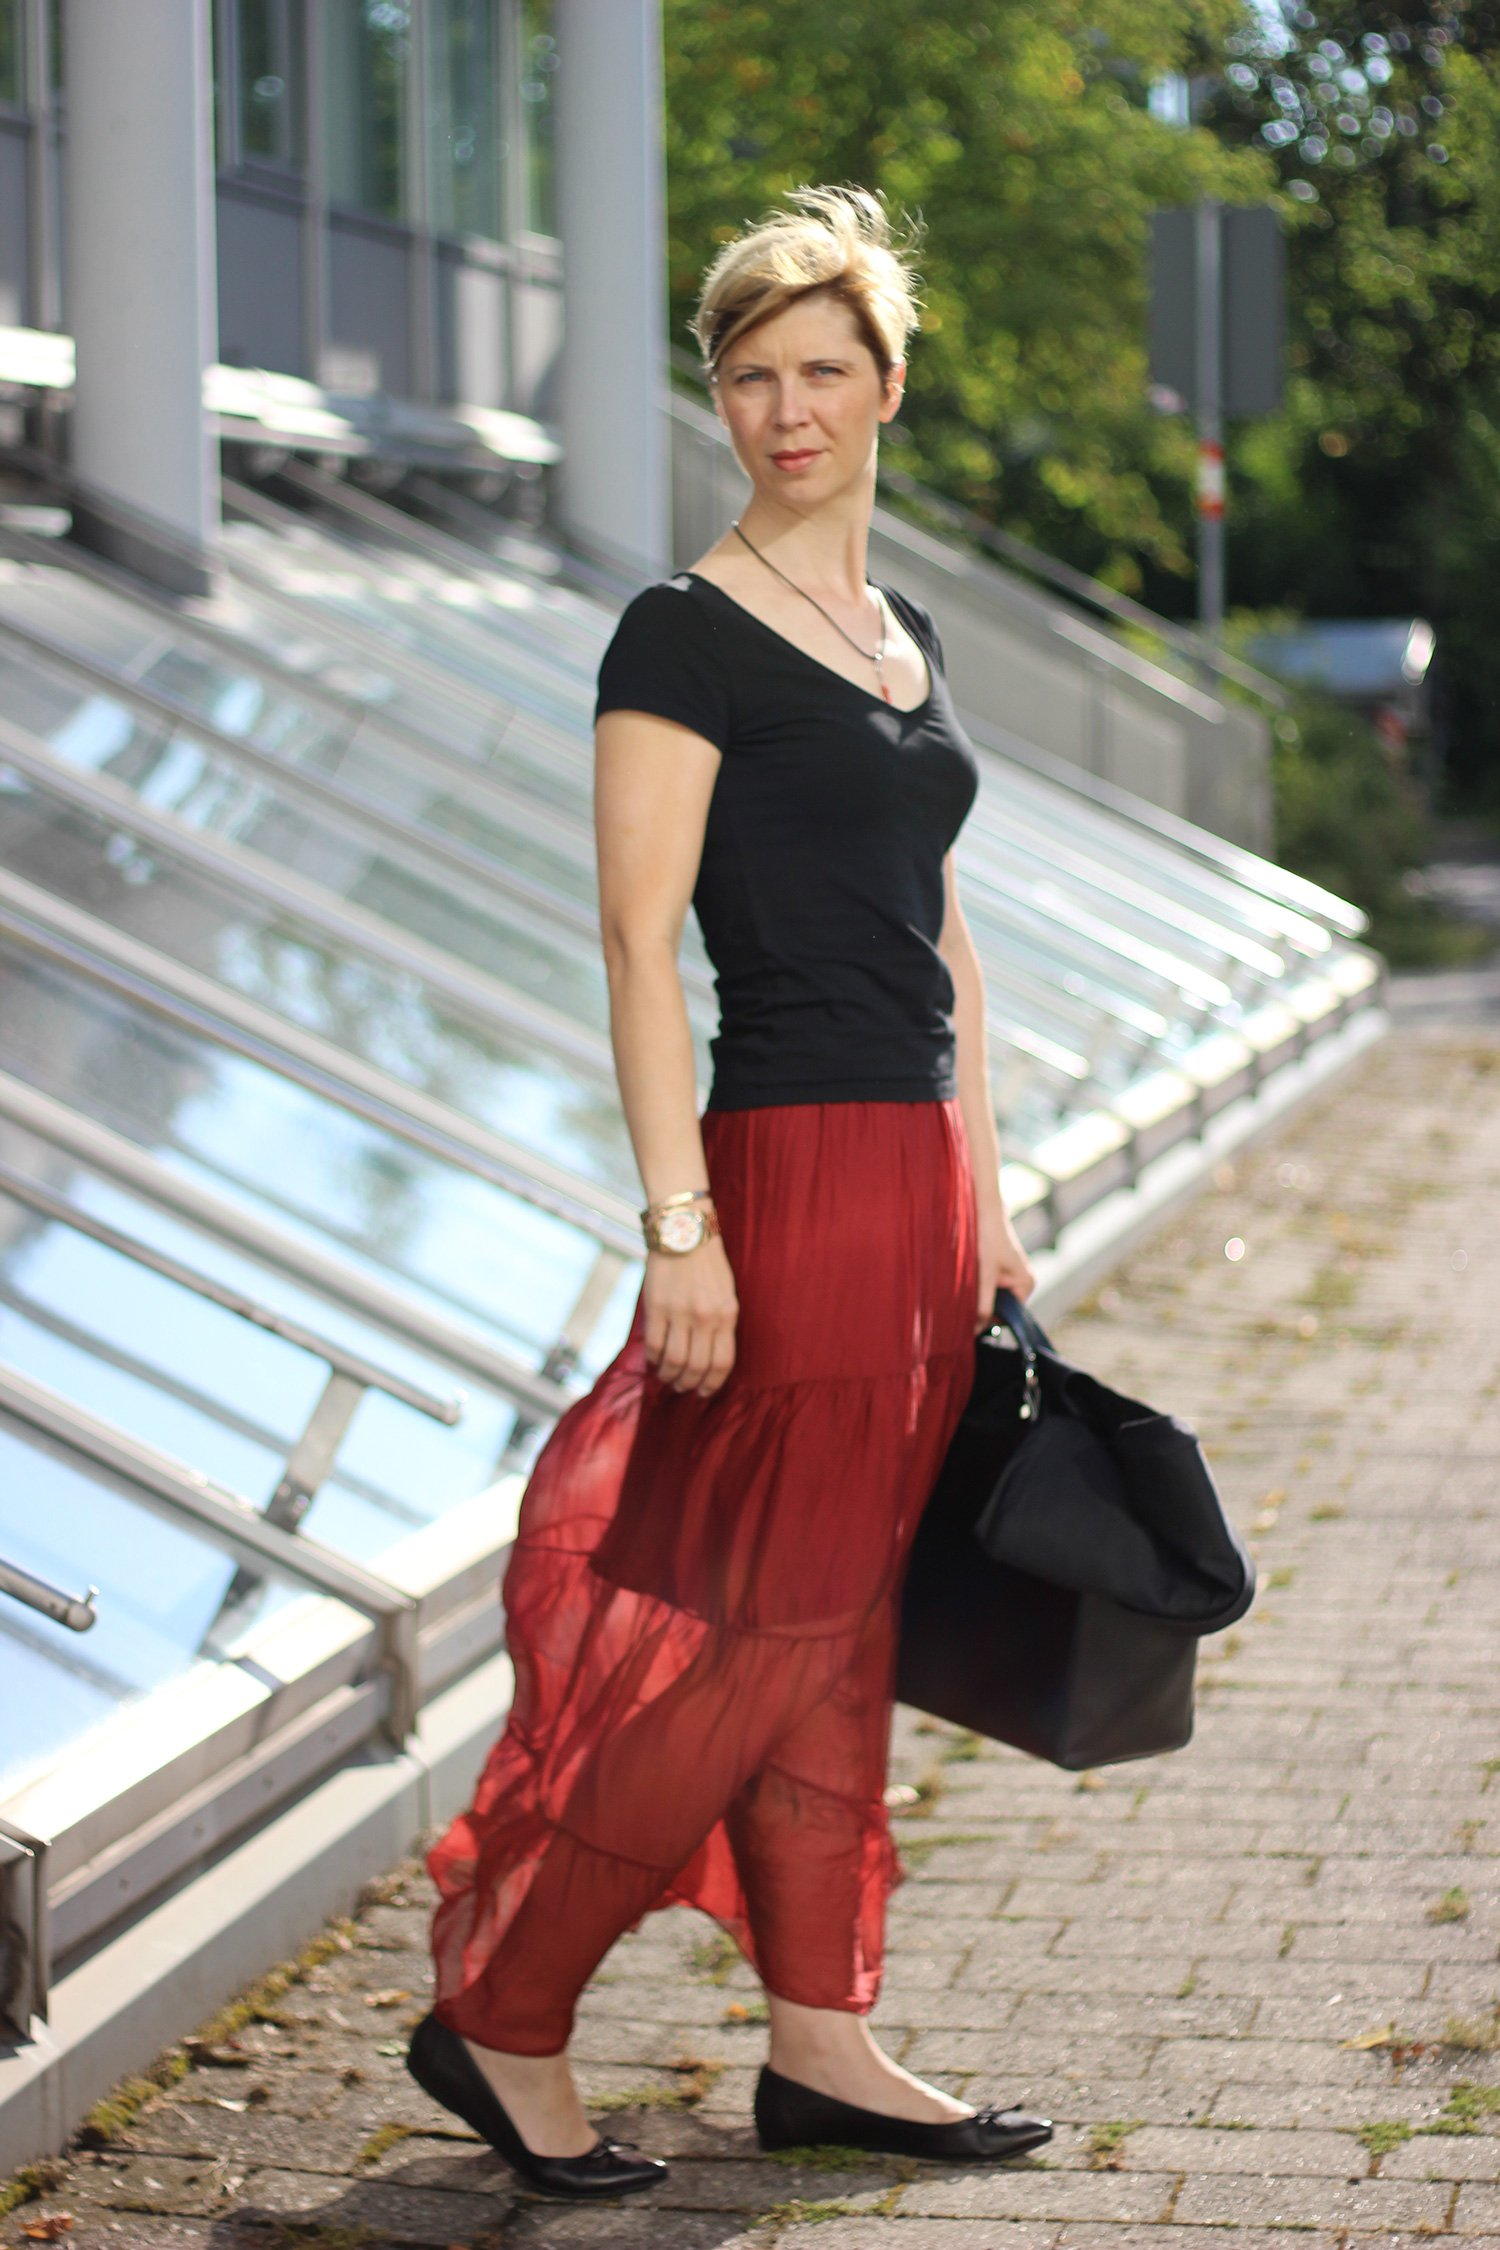 IMG_7744a_Maxirock_PaoloCasalini_Sommerbürooutfit_Officelook_Sommer_Seide